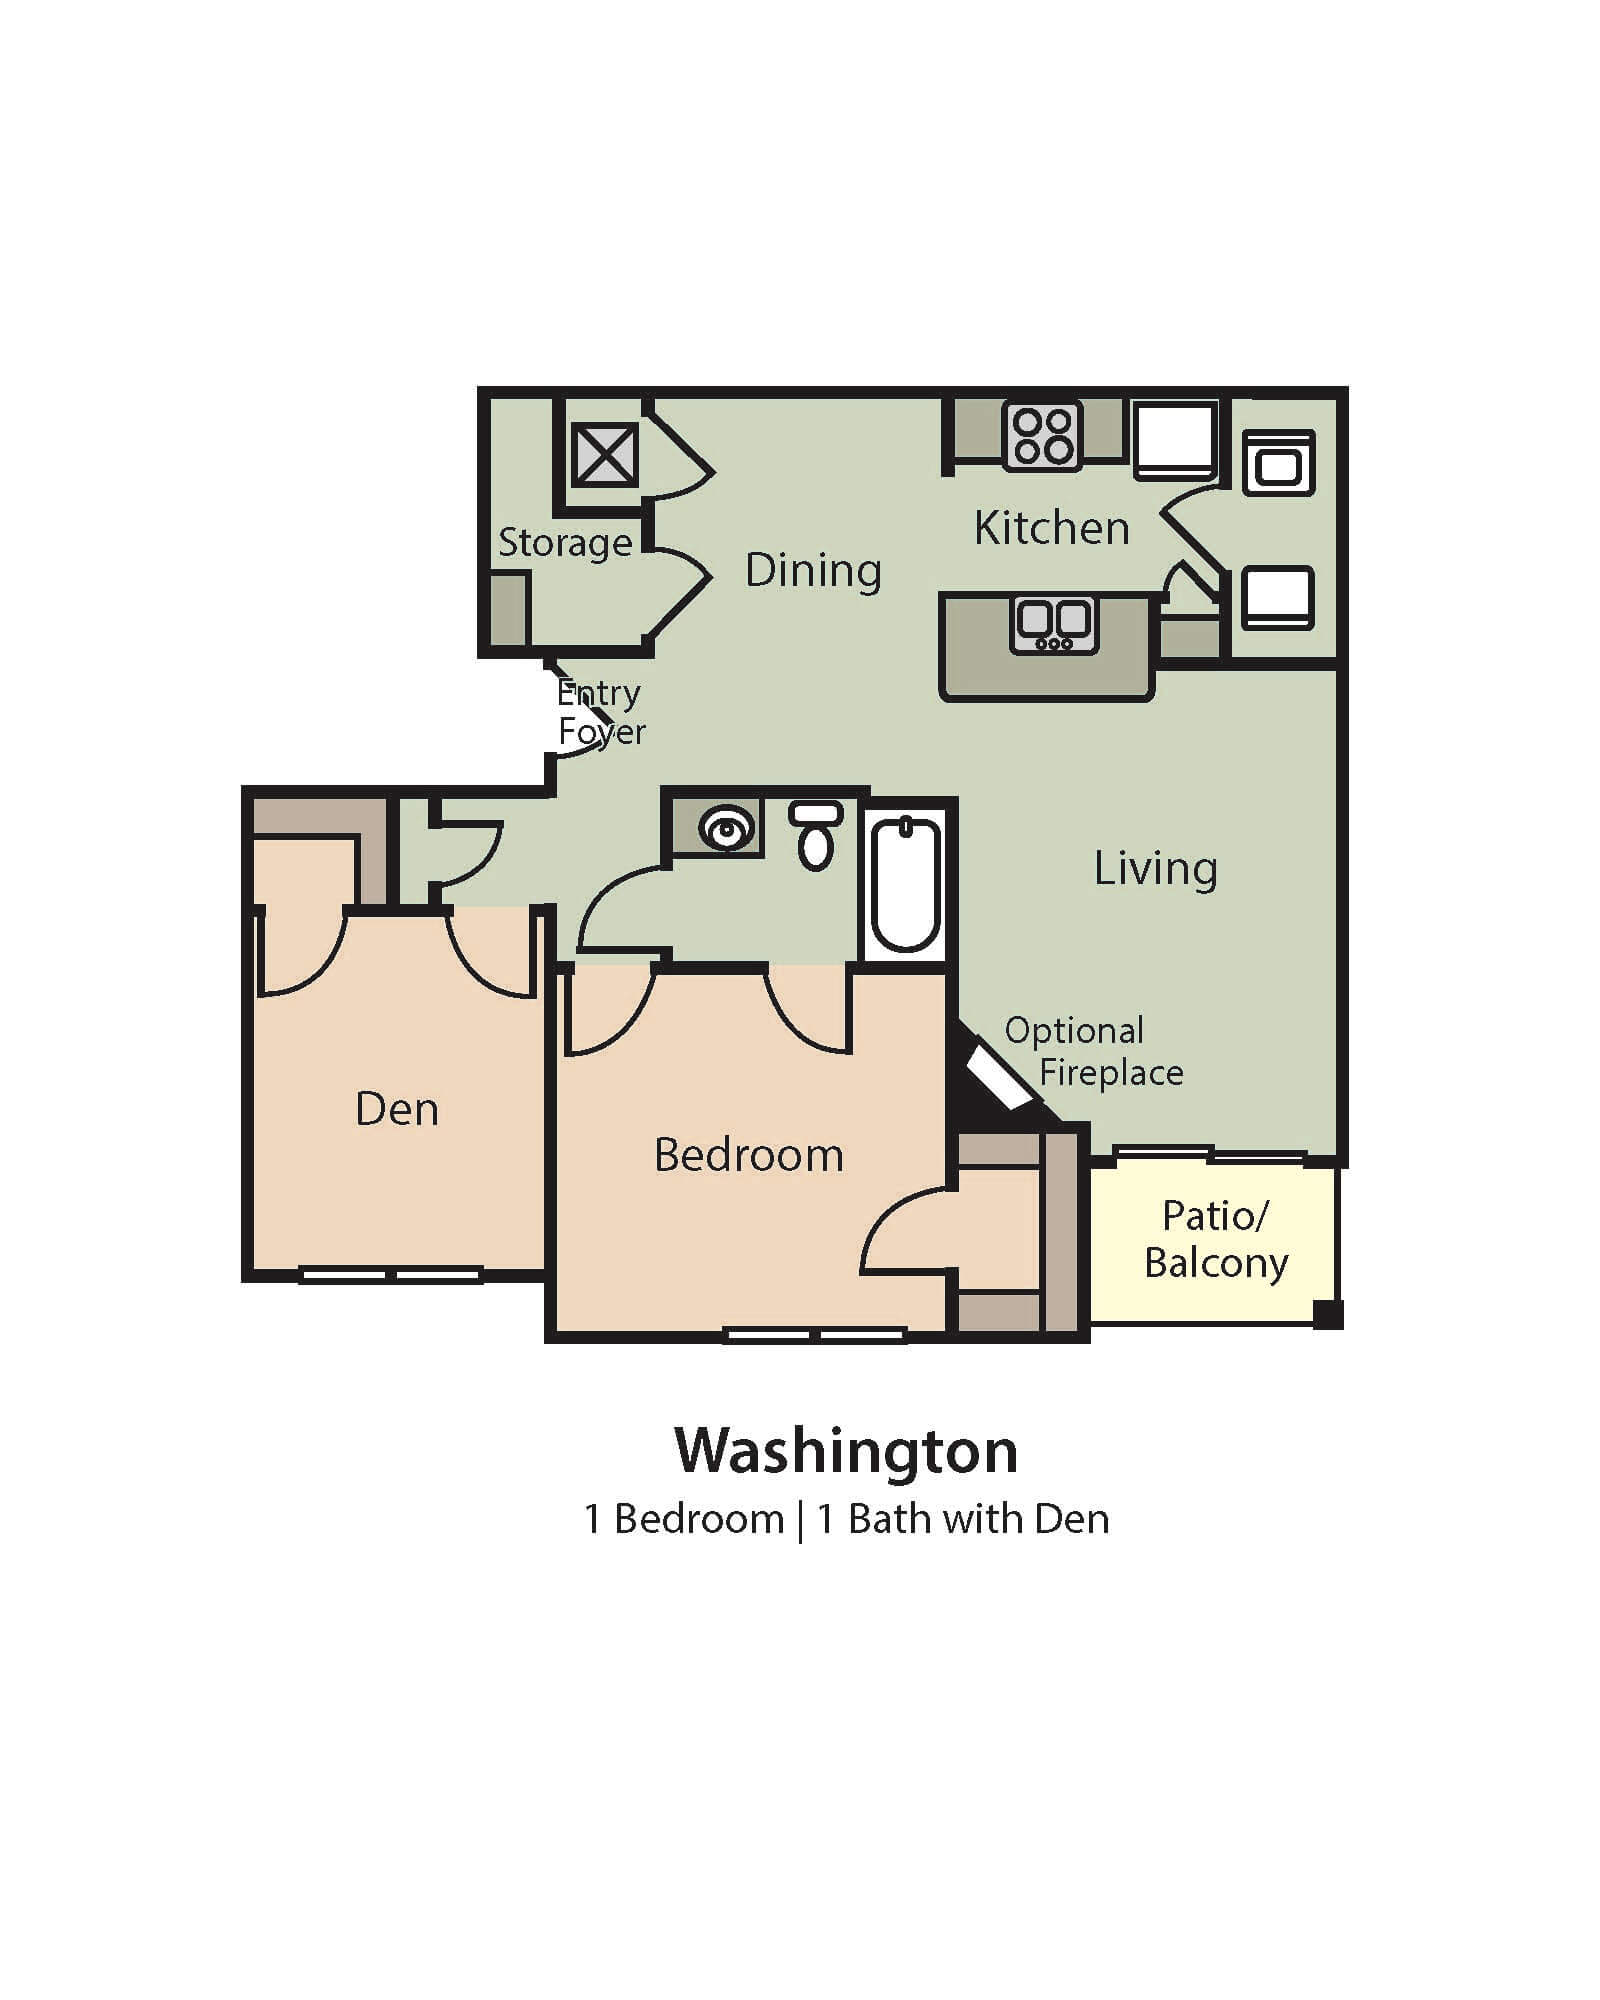 Washington Floor Plan, 1 Bedroom, 1 Bath